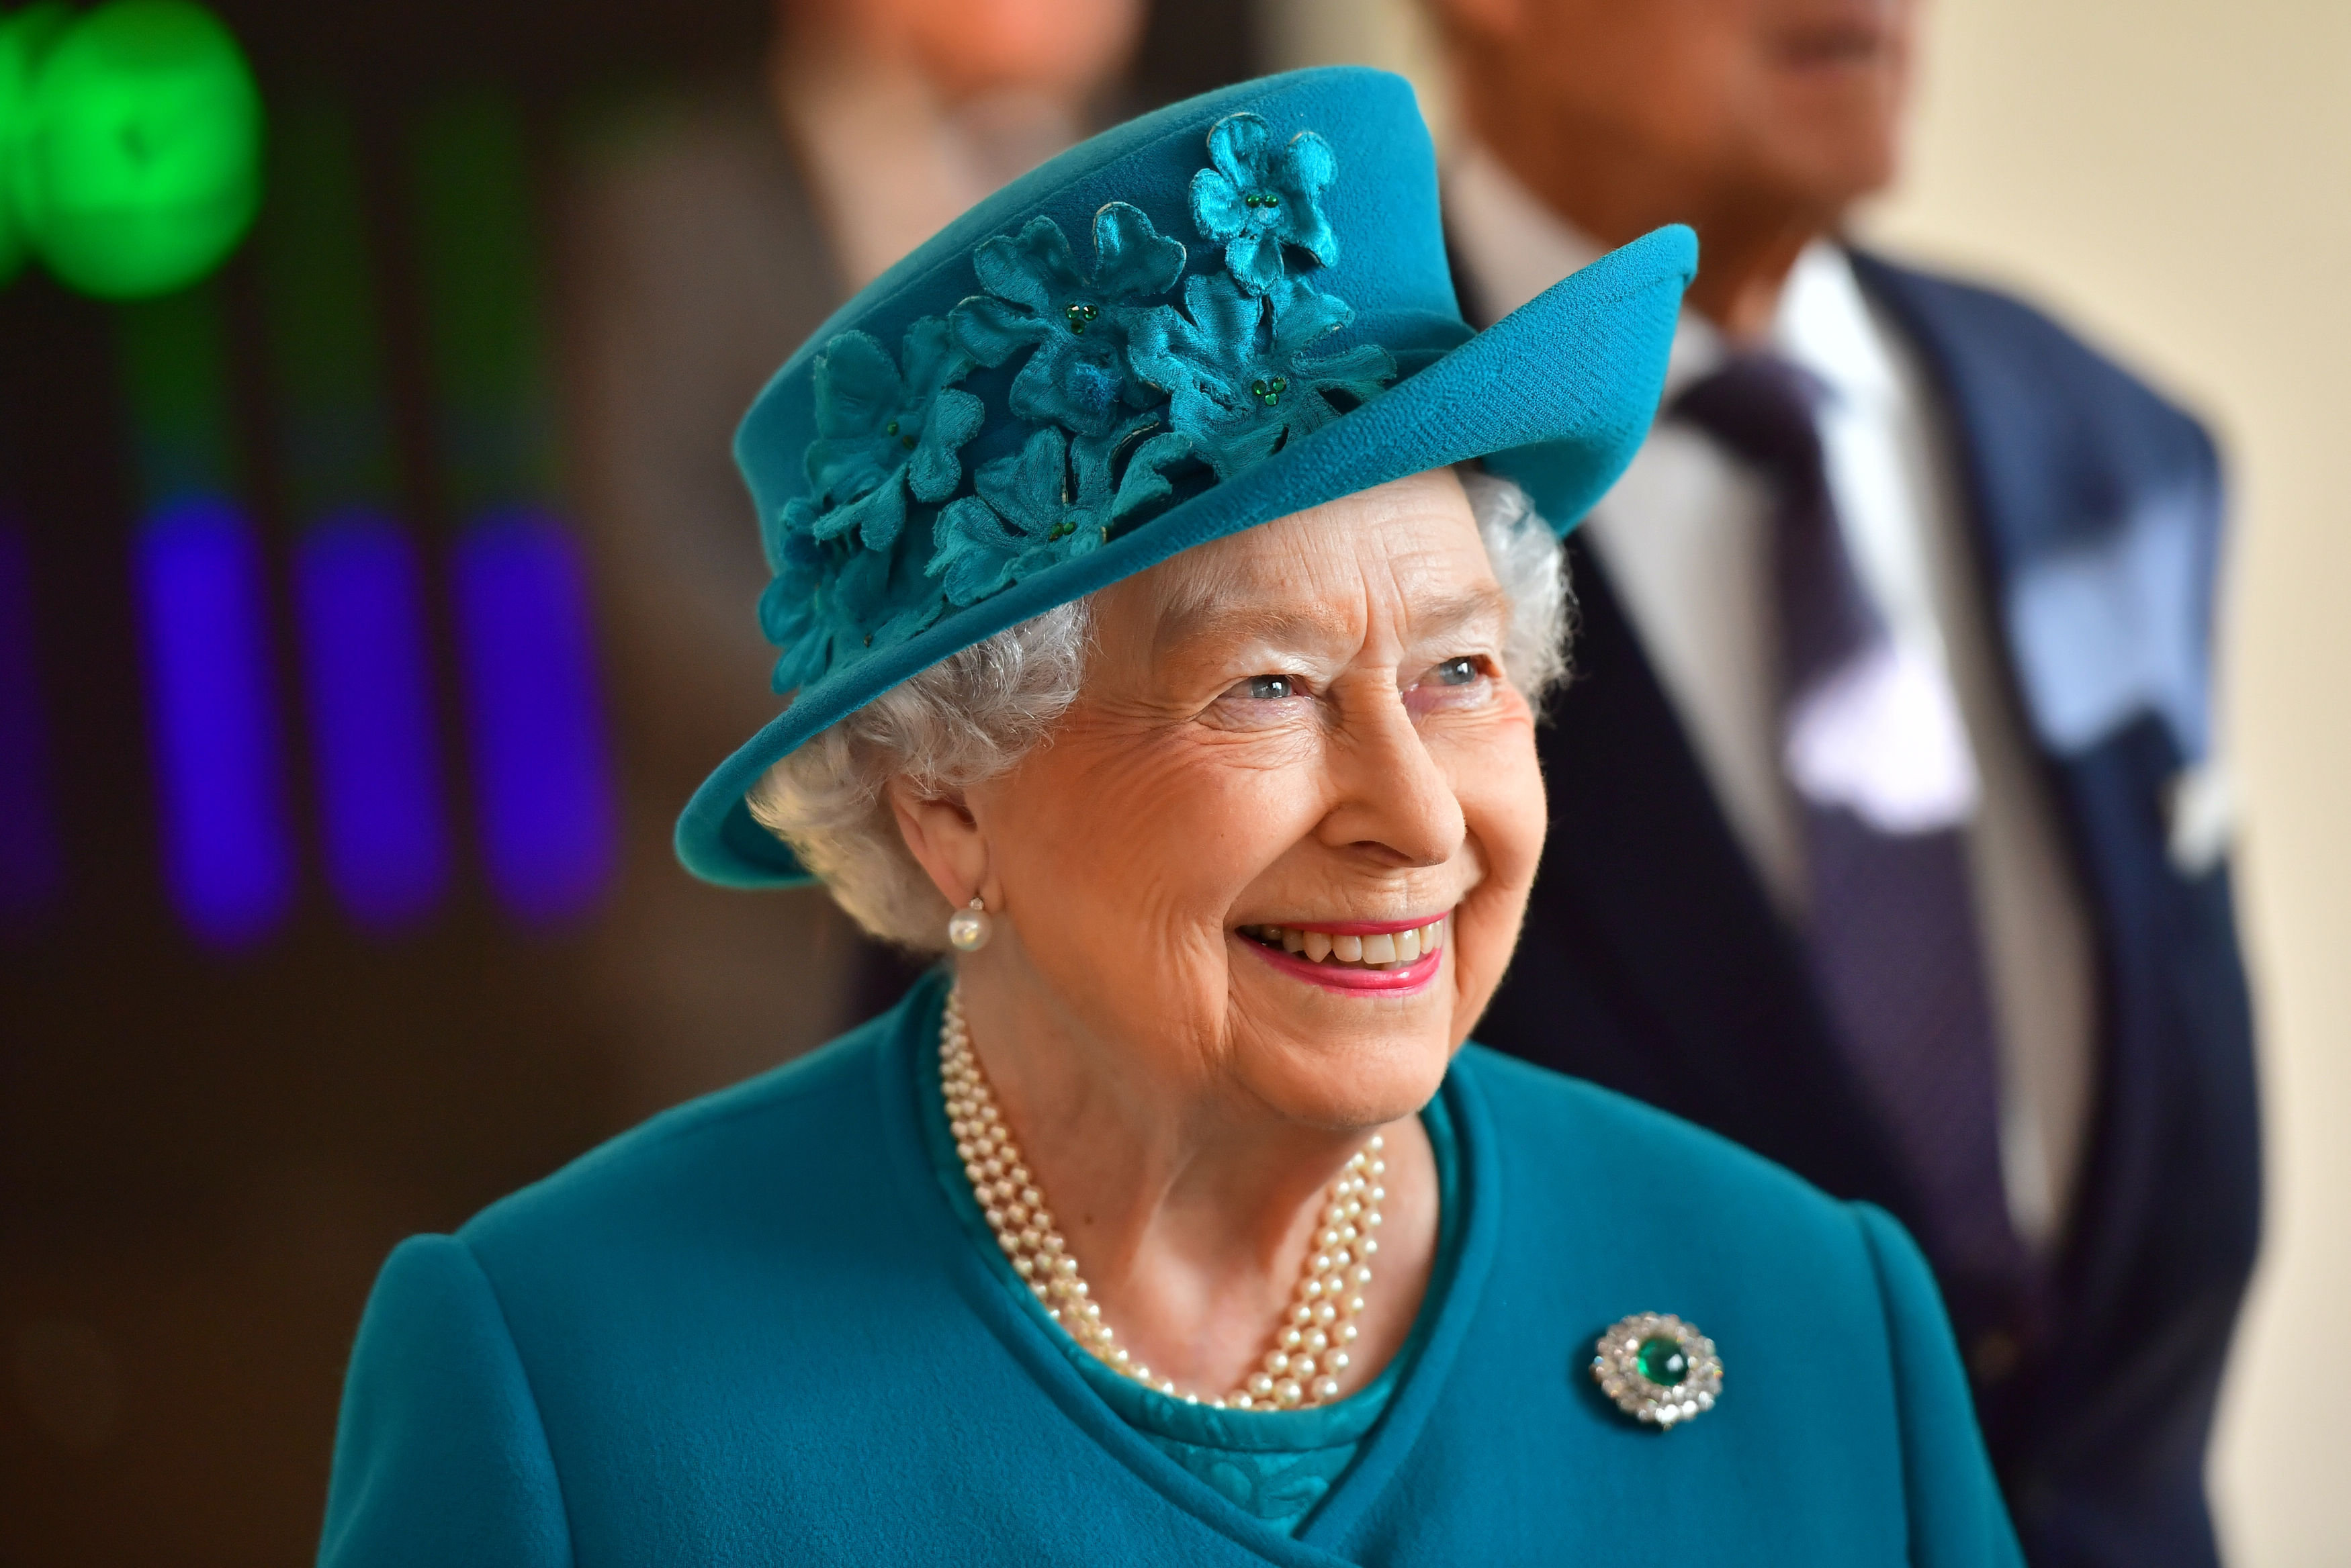 The Queen Backs Plans To Reduce The Use Of Plastics At Royal Residences